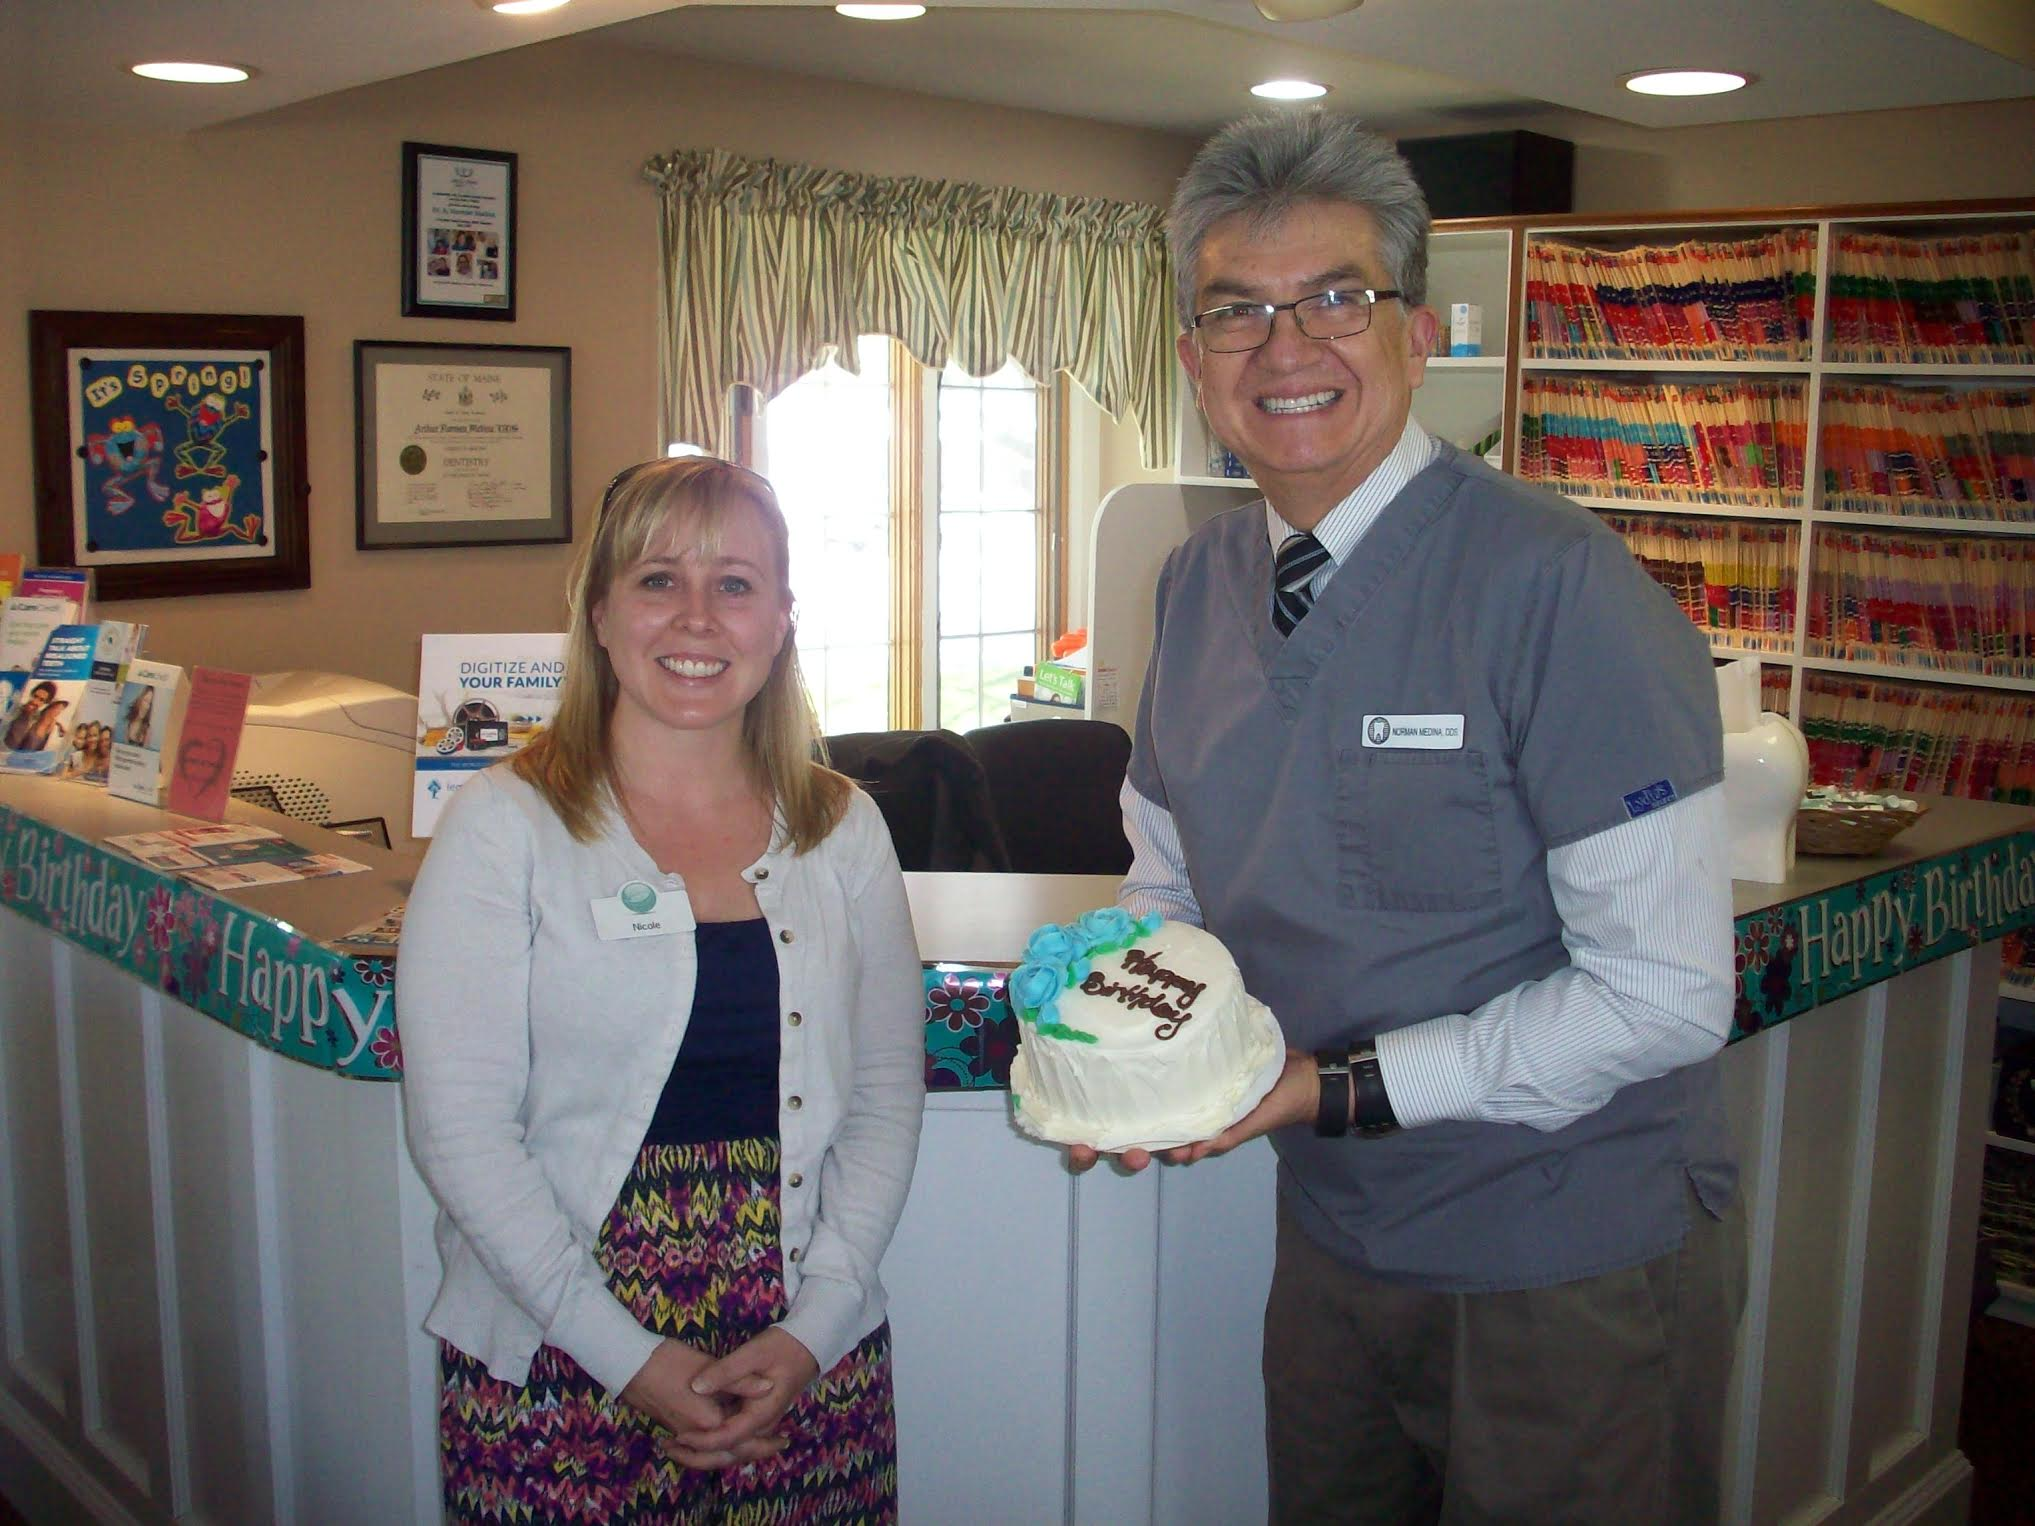 Birthday cake for me? Thank you Dr. Laliberte and staff.